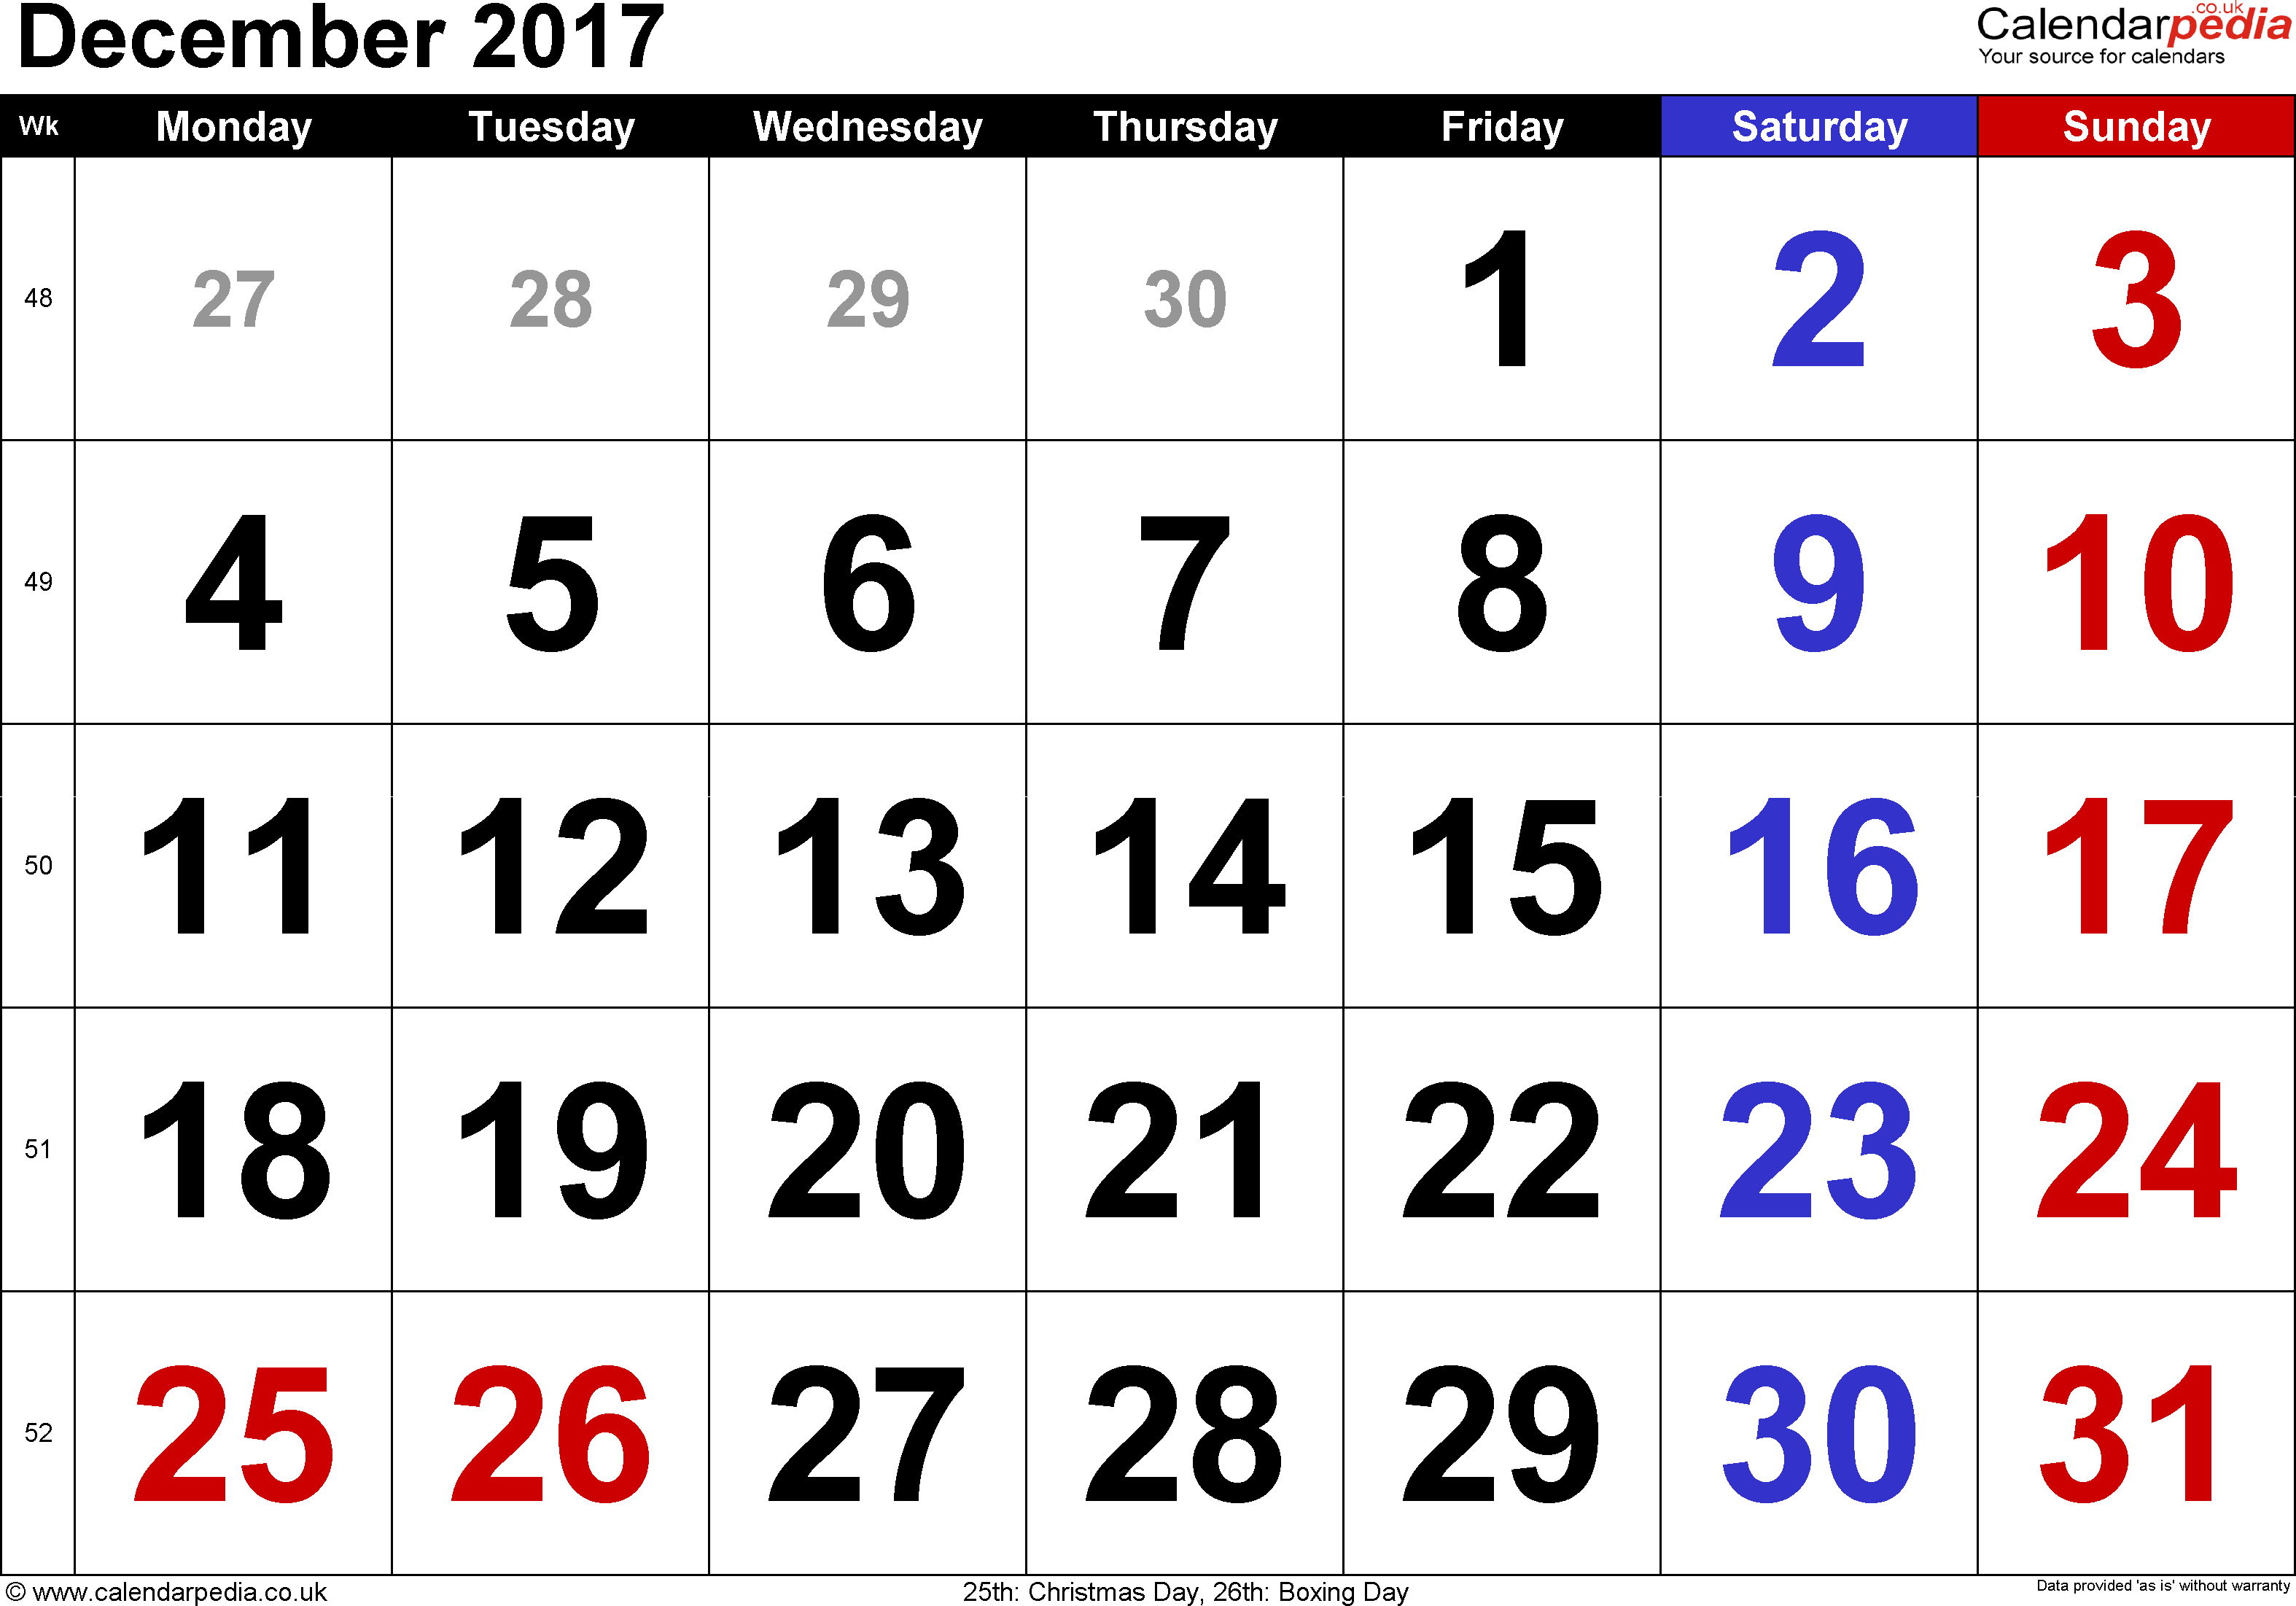 Calendar December 2017, landscape orientation, large numerals, 1 page, with UK bank holidays and week numbers